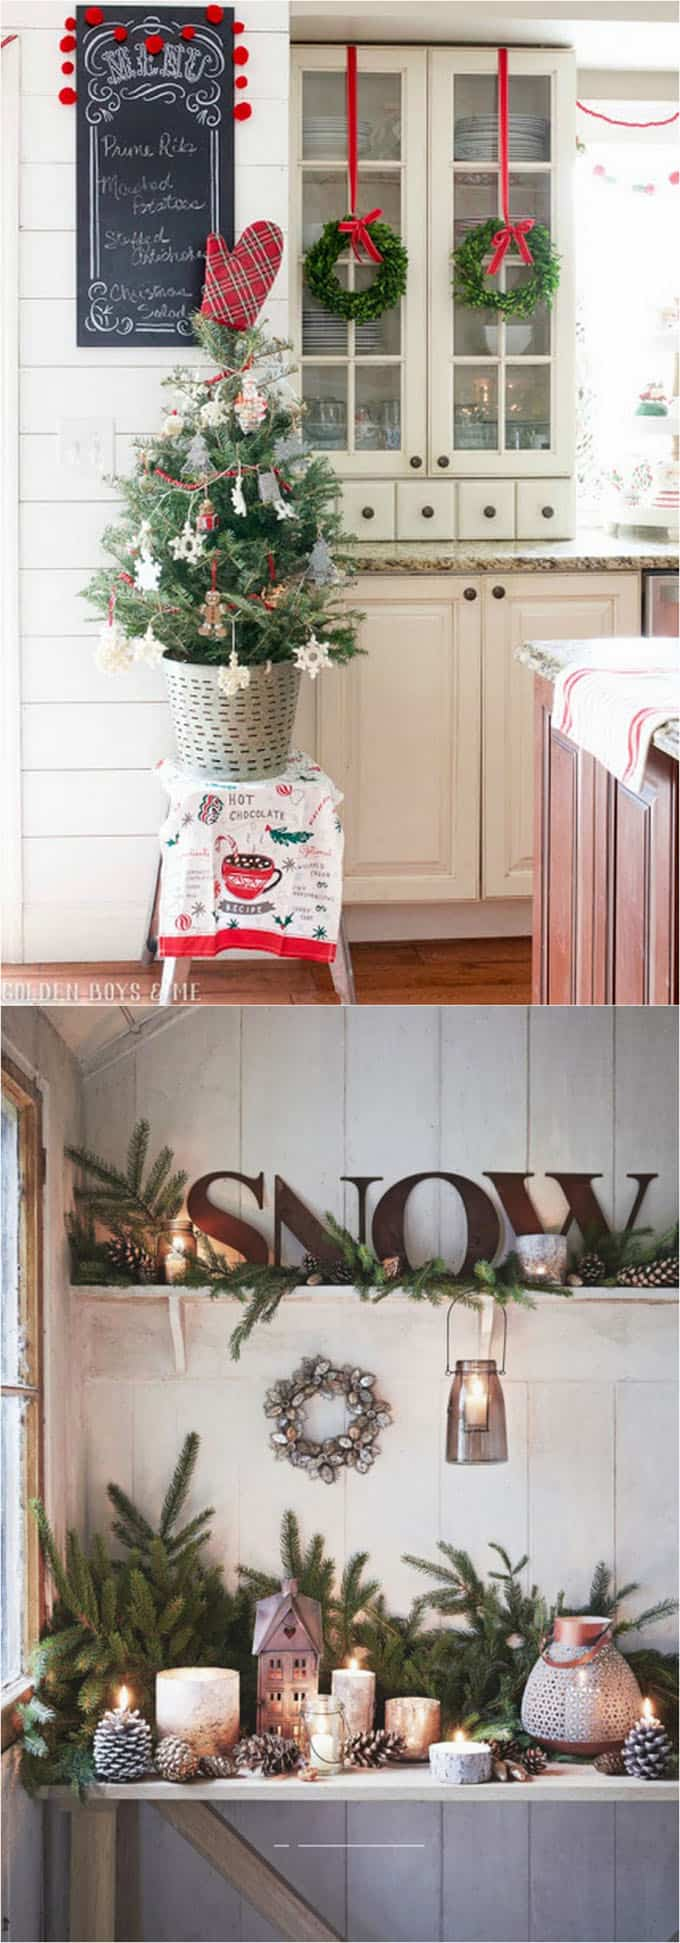 How To Decorate Kitchen Cabinets And Shelves For Christmas.